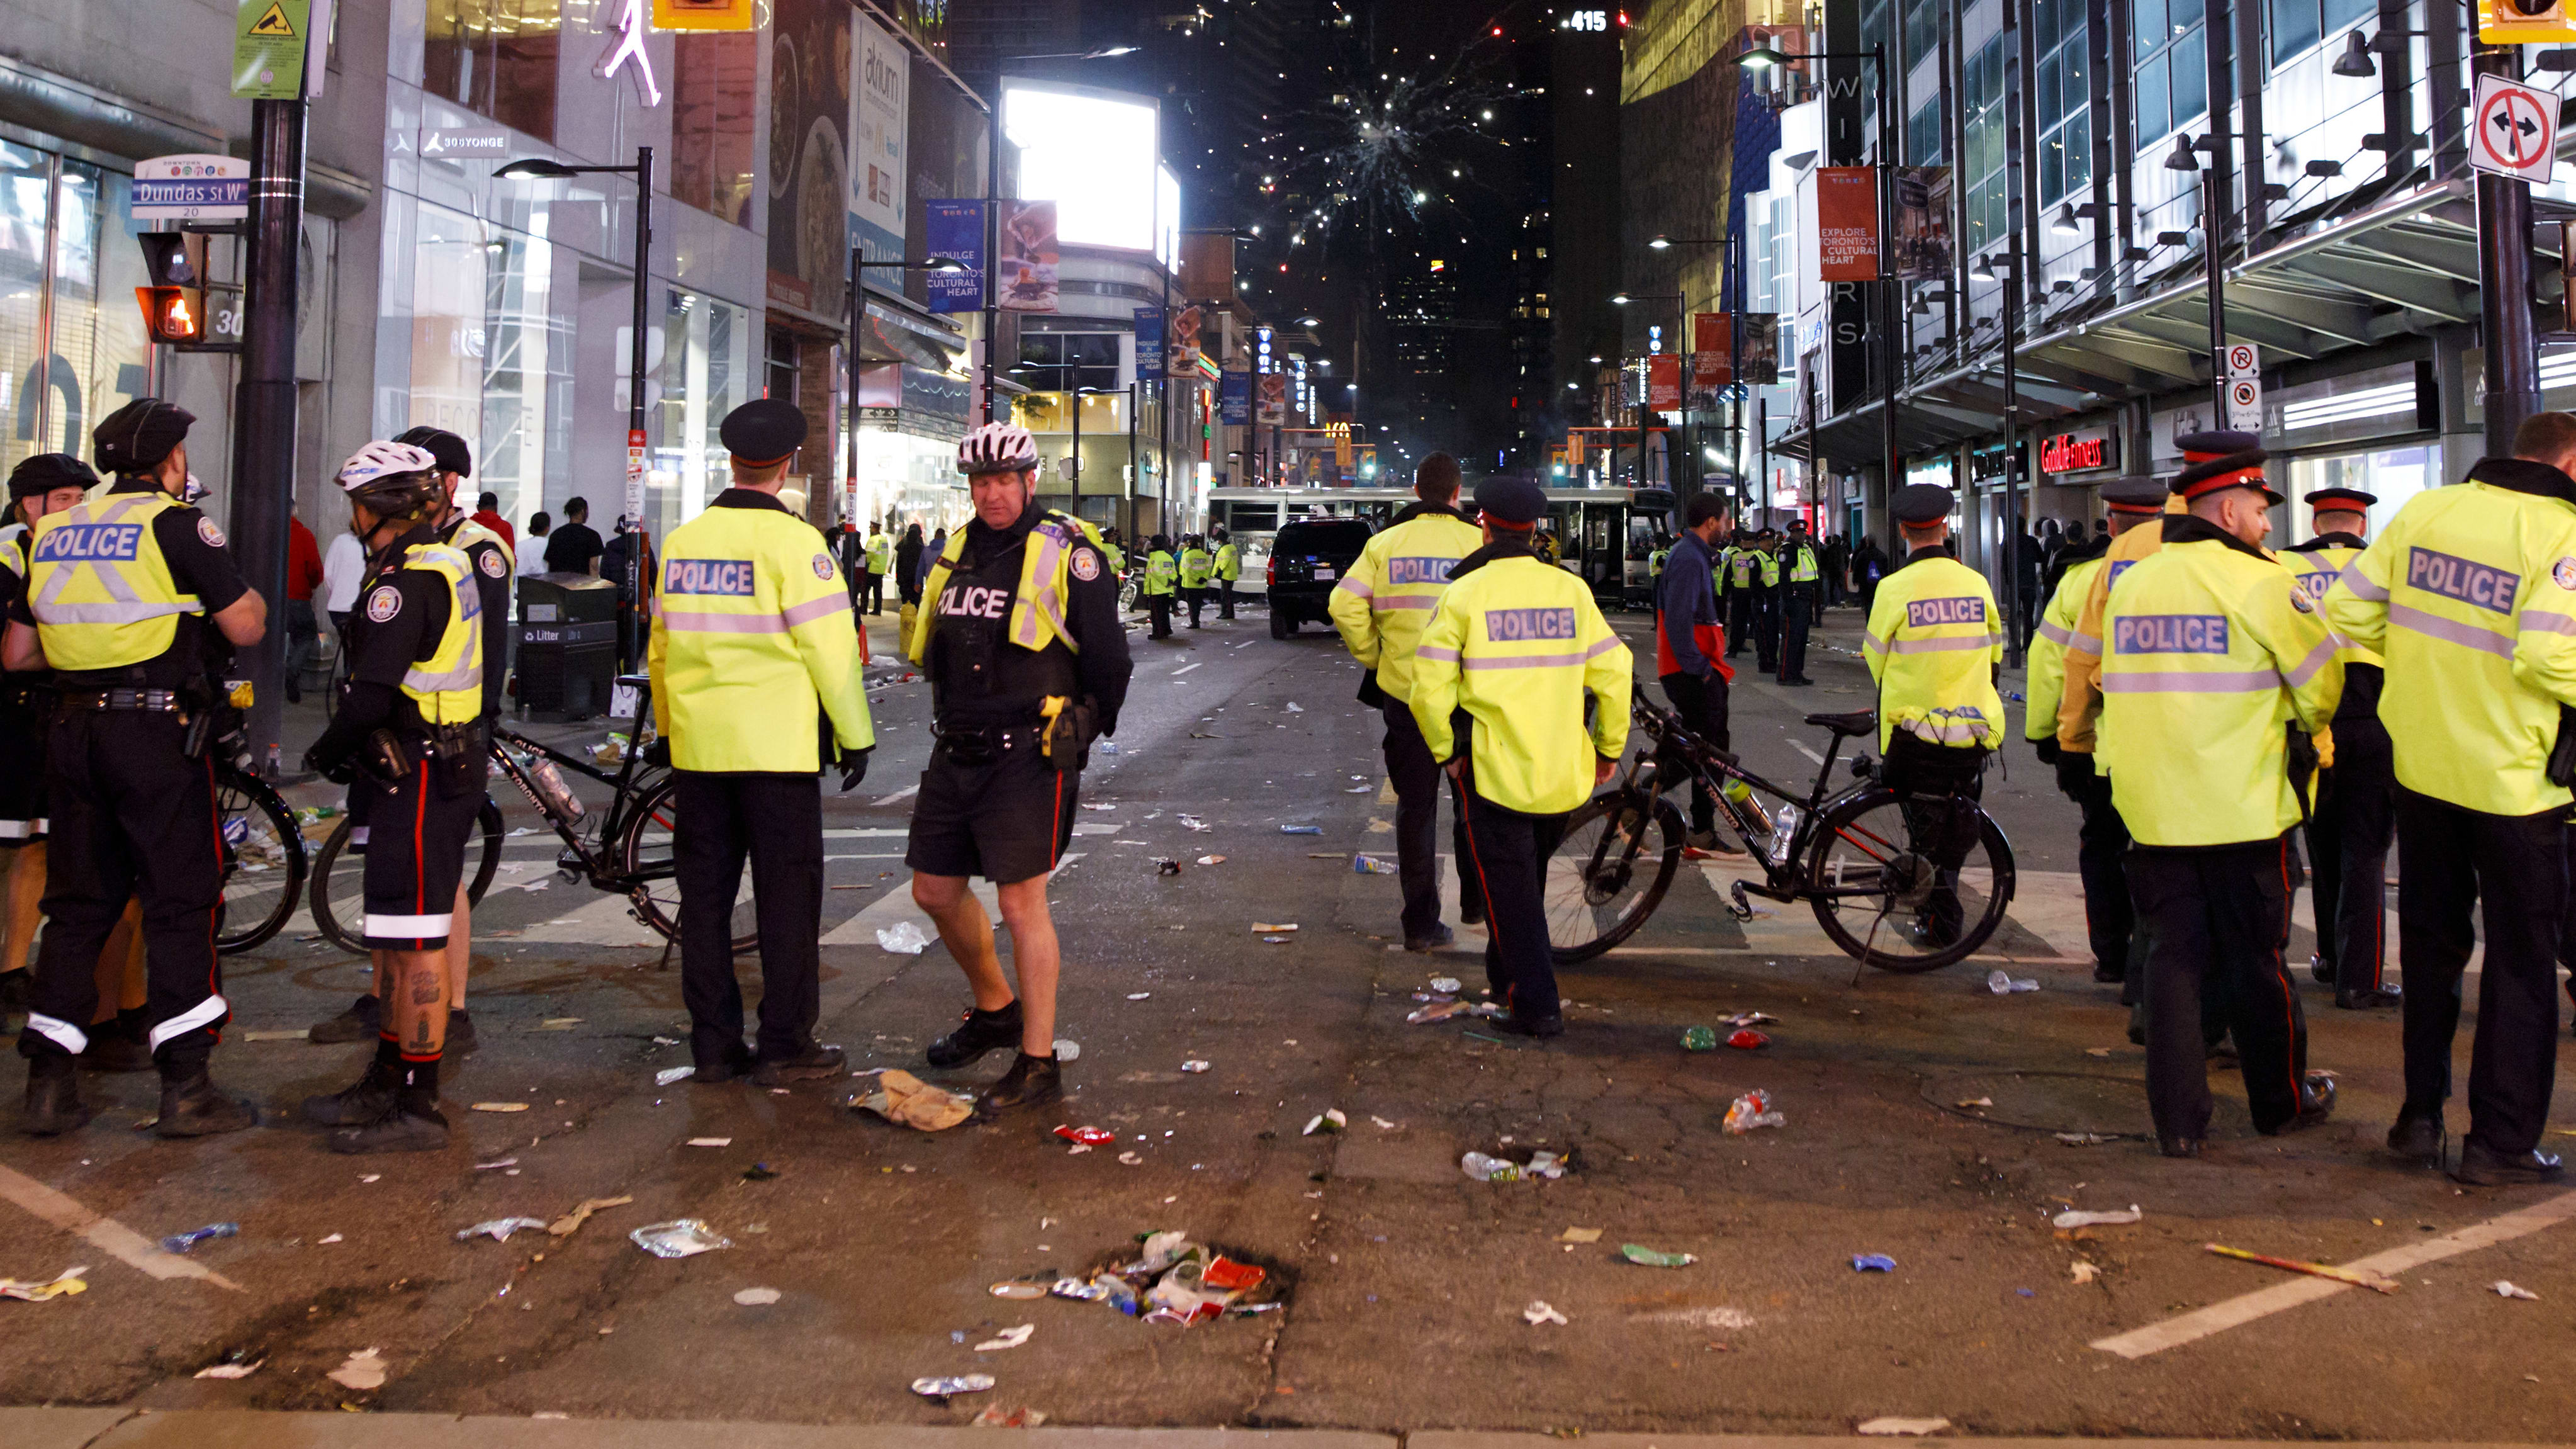 TORONTO, ON - JUNE 14:  Fireworks are seen beyond a line of Toronto Police officers amidst celebrations on Yonge St. after the Toronto Raptors beat the Golden State Warriors in Game Six of the NBA Finals, on June 14, 2019 in Toronto, Canada. (Photo by Cole Burston/Getty Images)